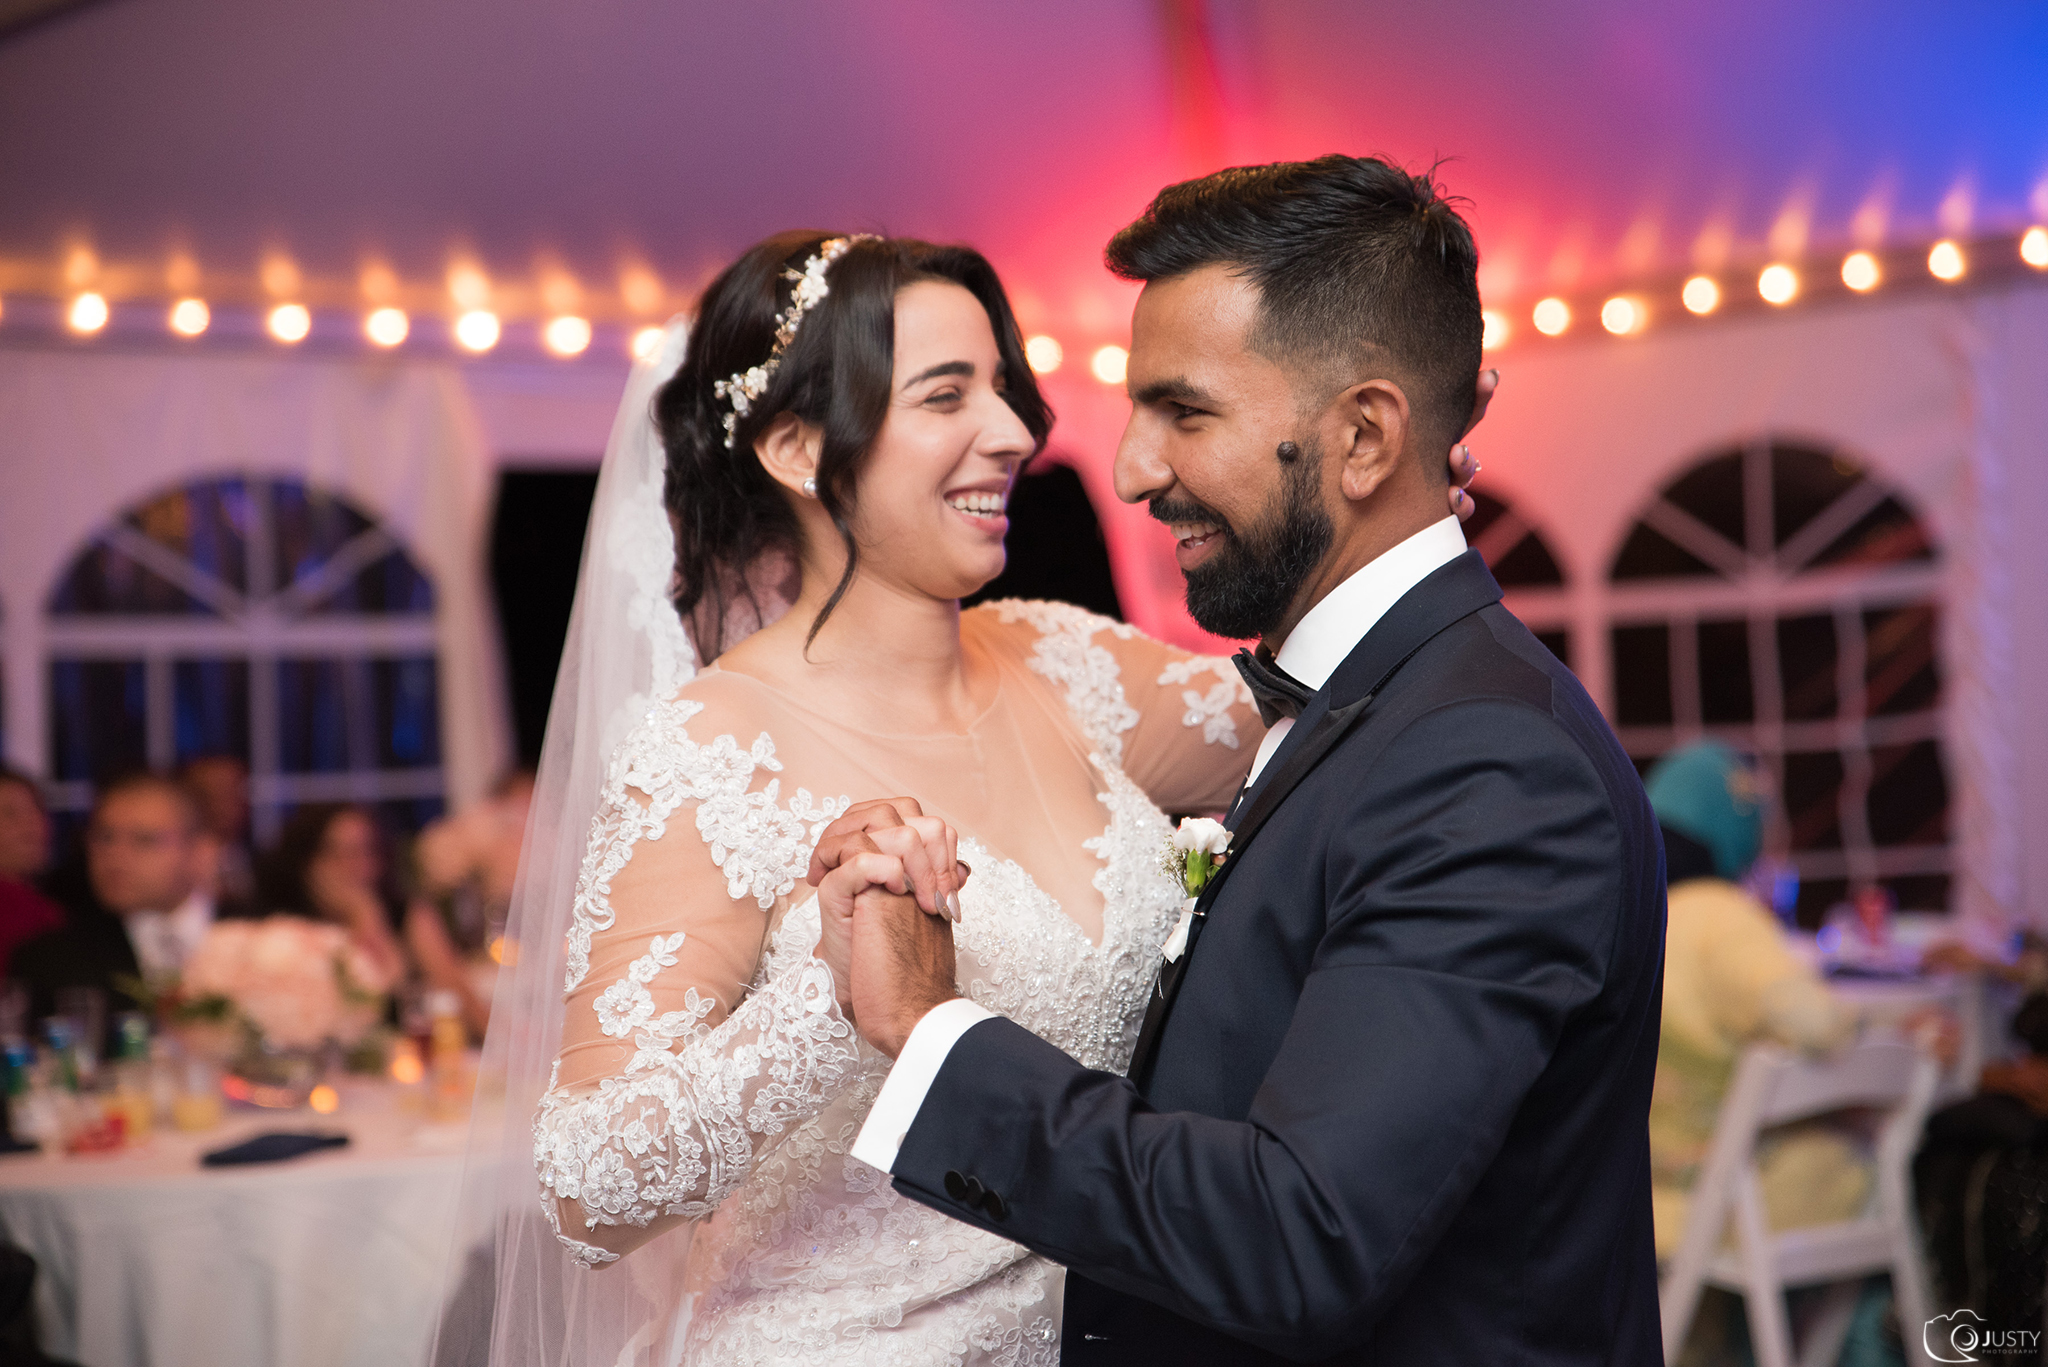 Bride and Groom first dance photos - Strong mansion wedding photos